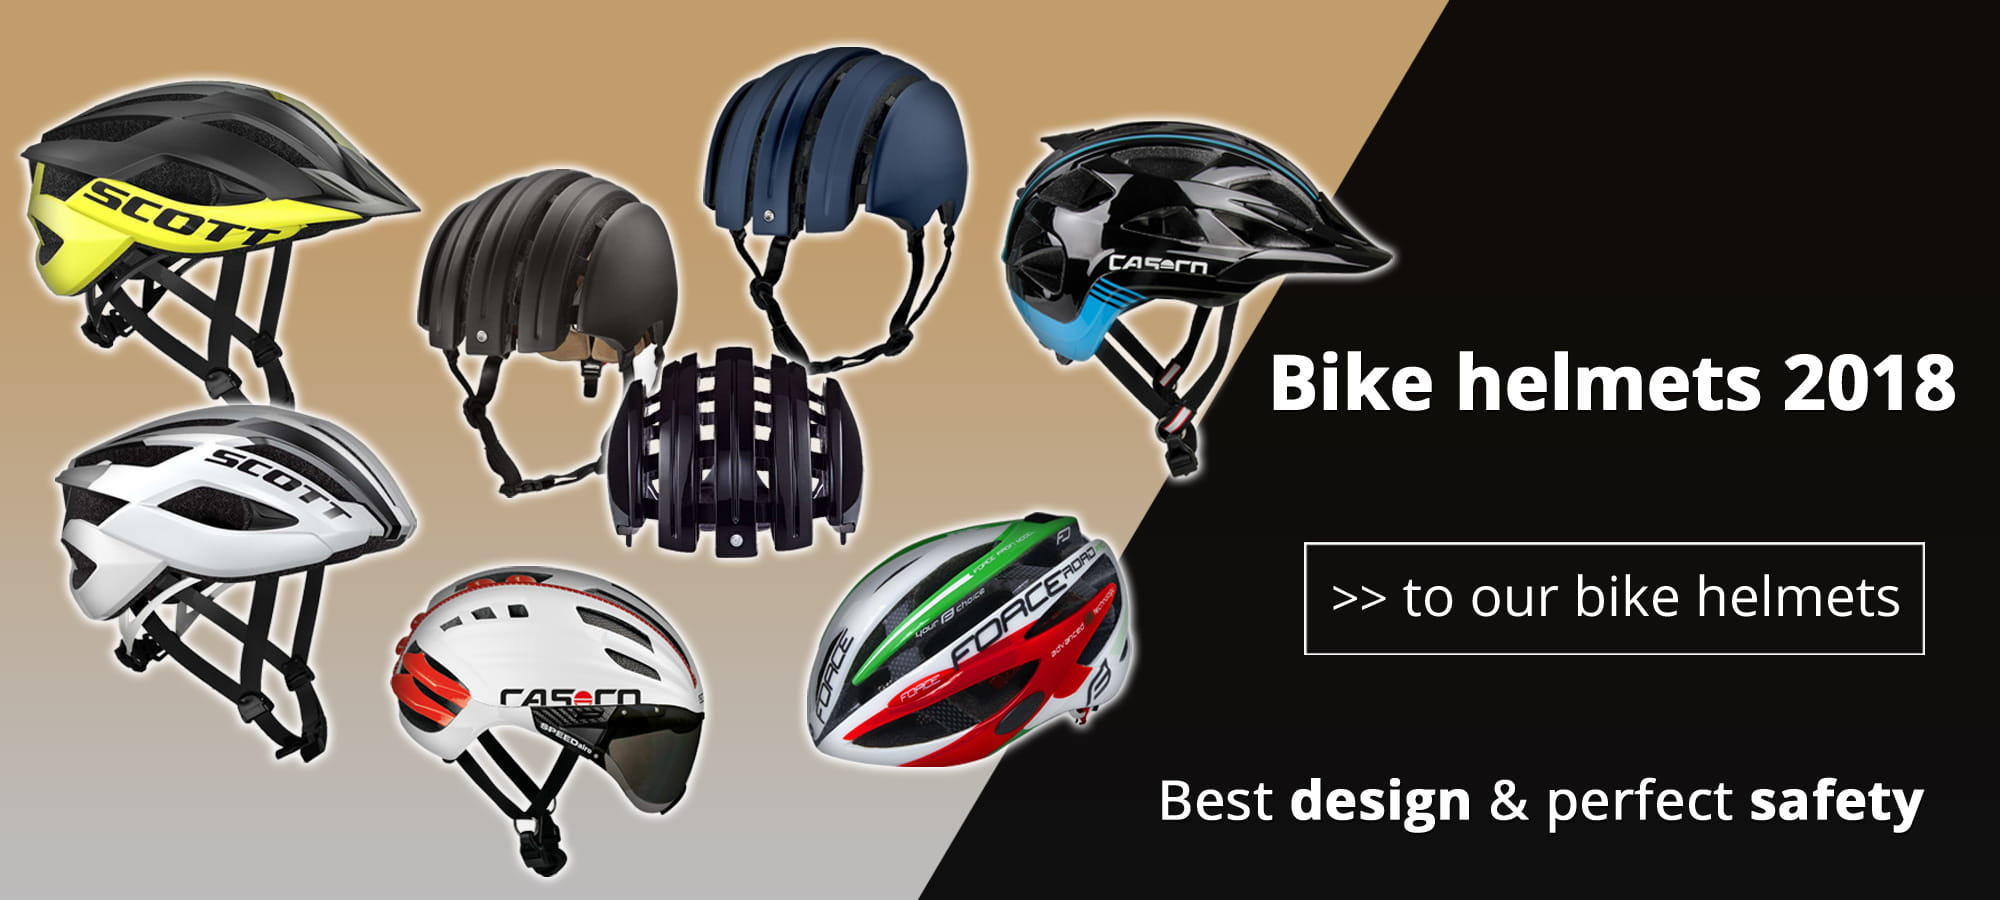 Our bike helmets 2018 offer best design and perfect safety